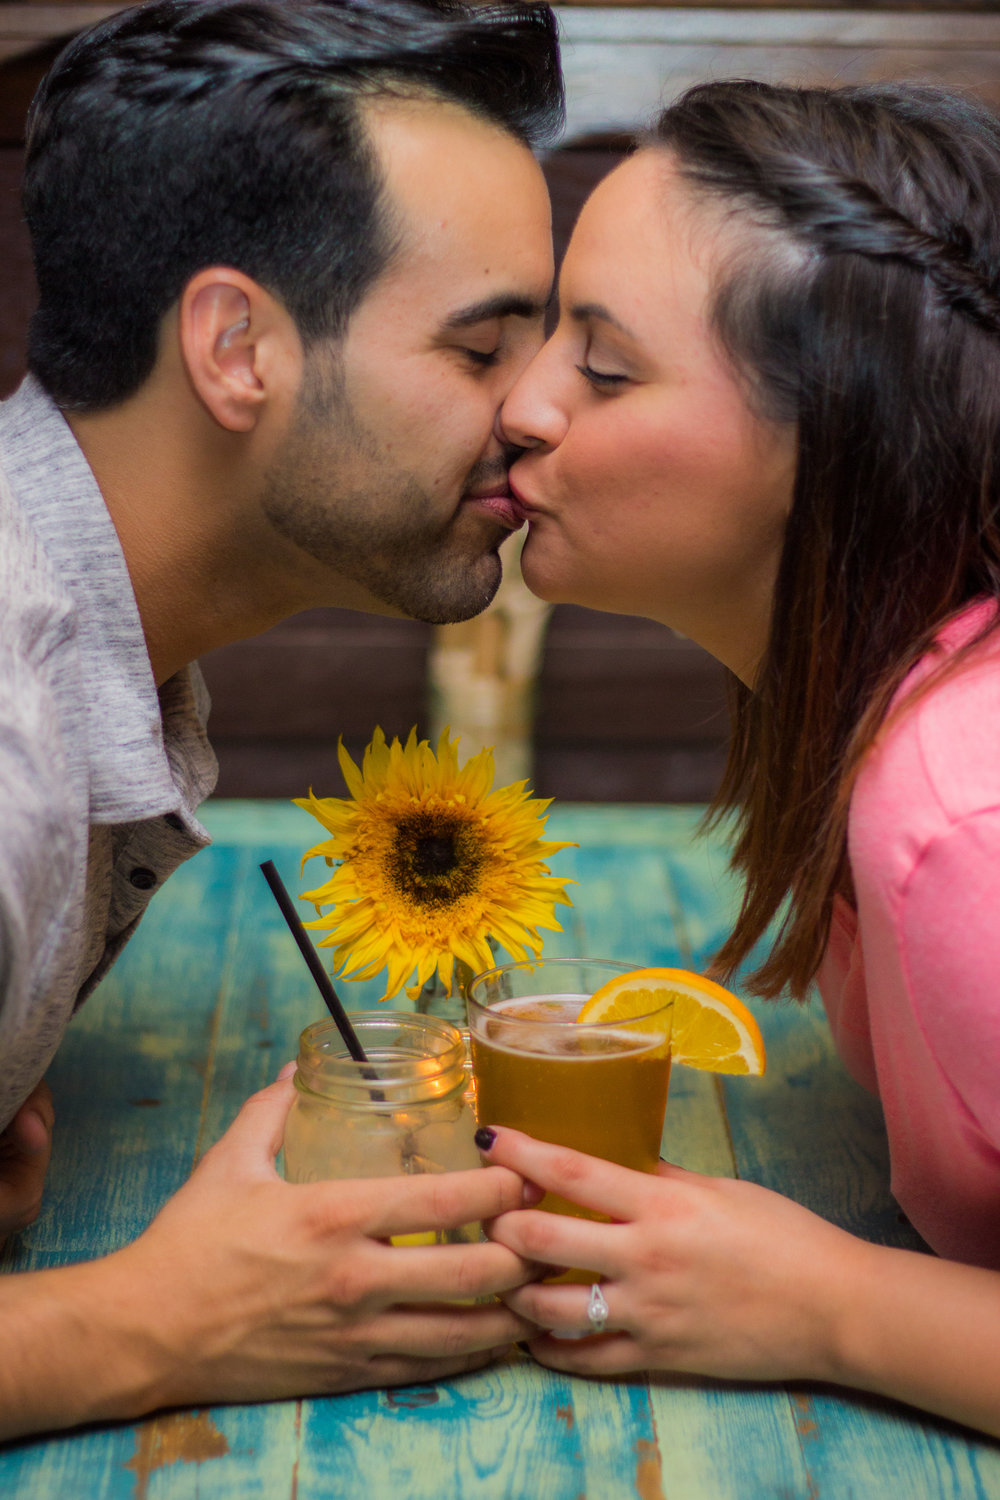 coronado-tavern-restaurant-california-san-diego-wedding-photographer-first-date-recreated-sunflowers-blue-moon-ale-teal-tables-candlelight-booth-by-the-window